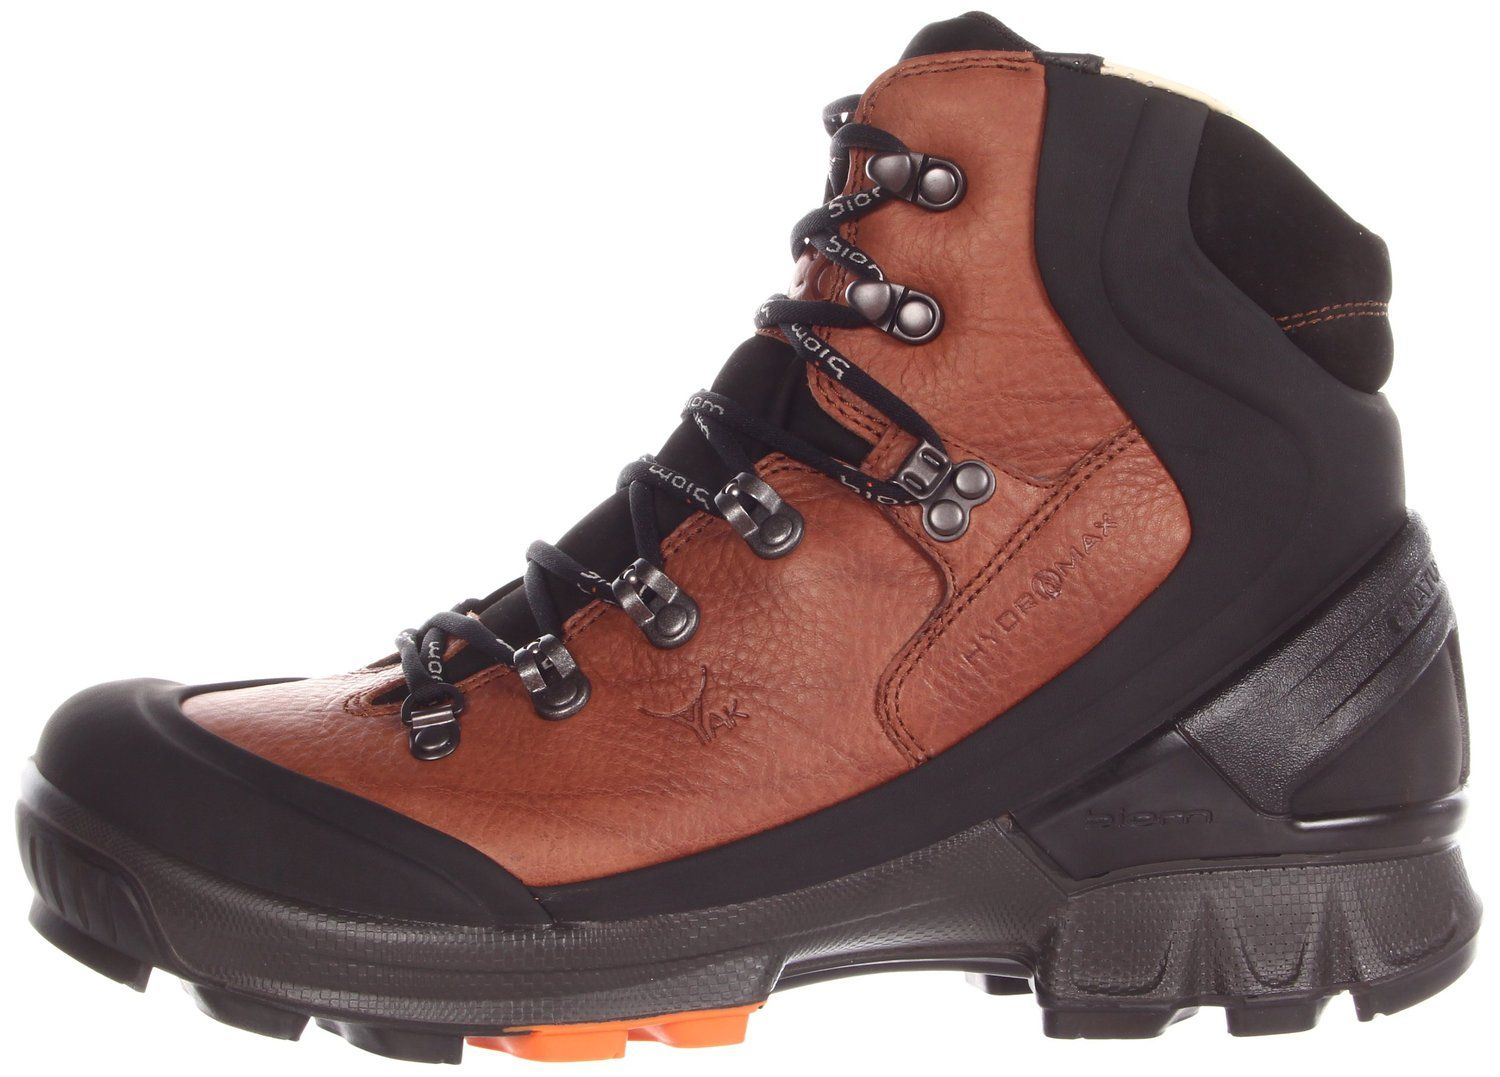 49d7a41ef ecco BIOM HIKE 811524 55275 Unisex-adult Hiking Boot  Amazon.co.uk ...